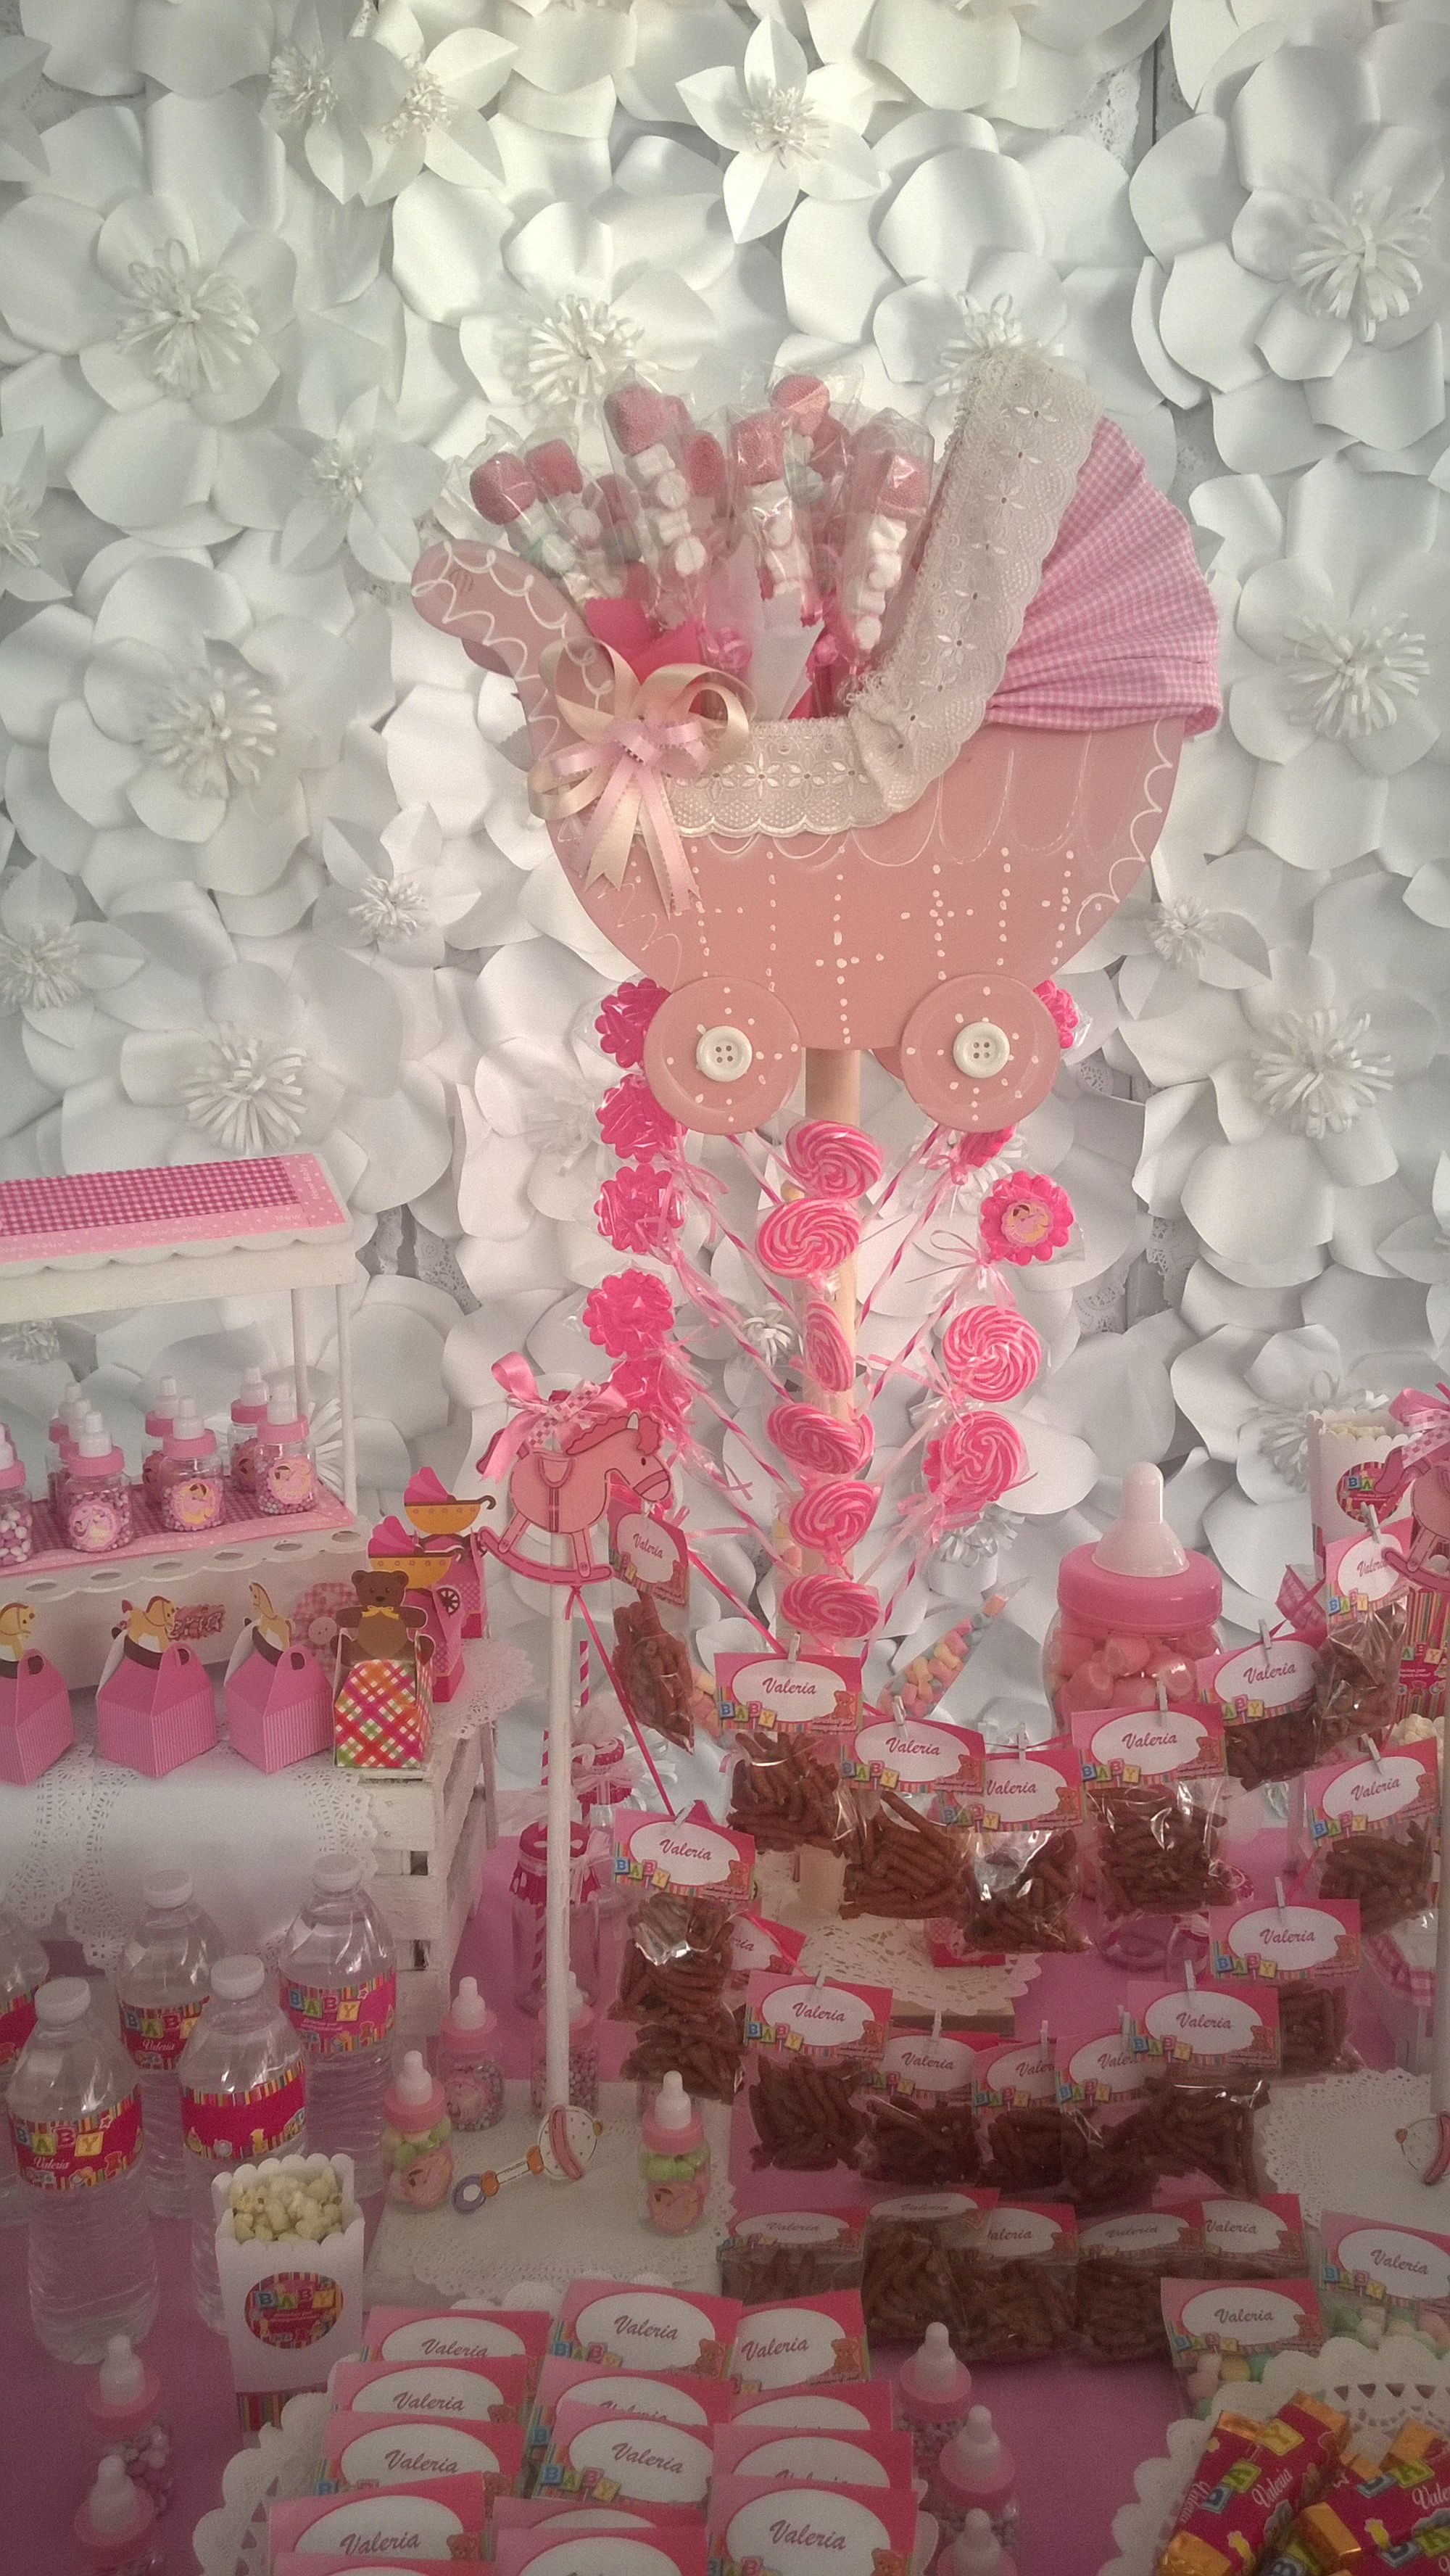 Inspirational Baby Girl Sweets Table Mesa De Dulces Para Baby Shower De Niña within Mesa De Dulces Para Baby Shower